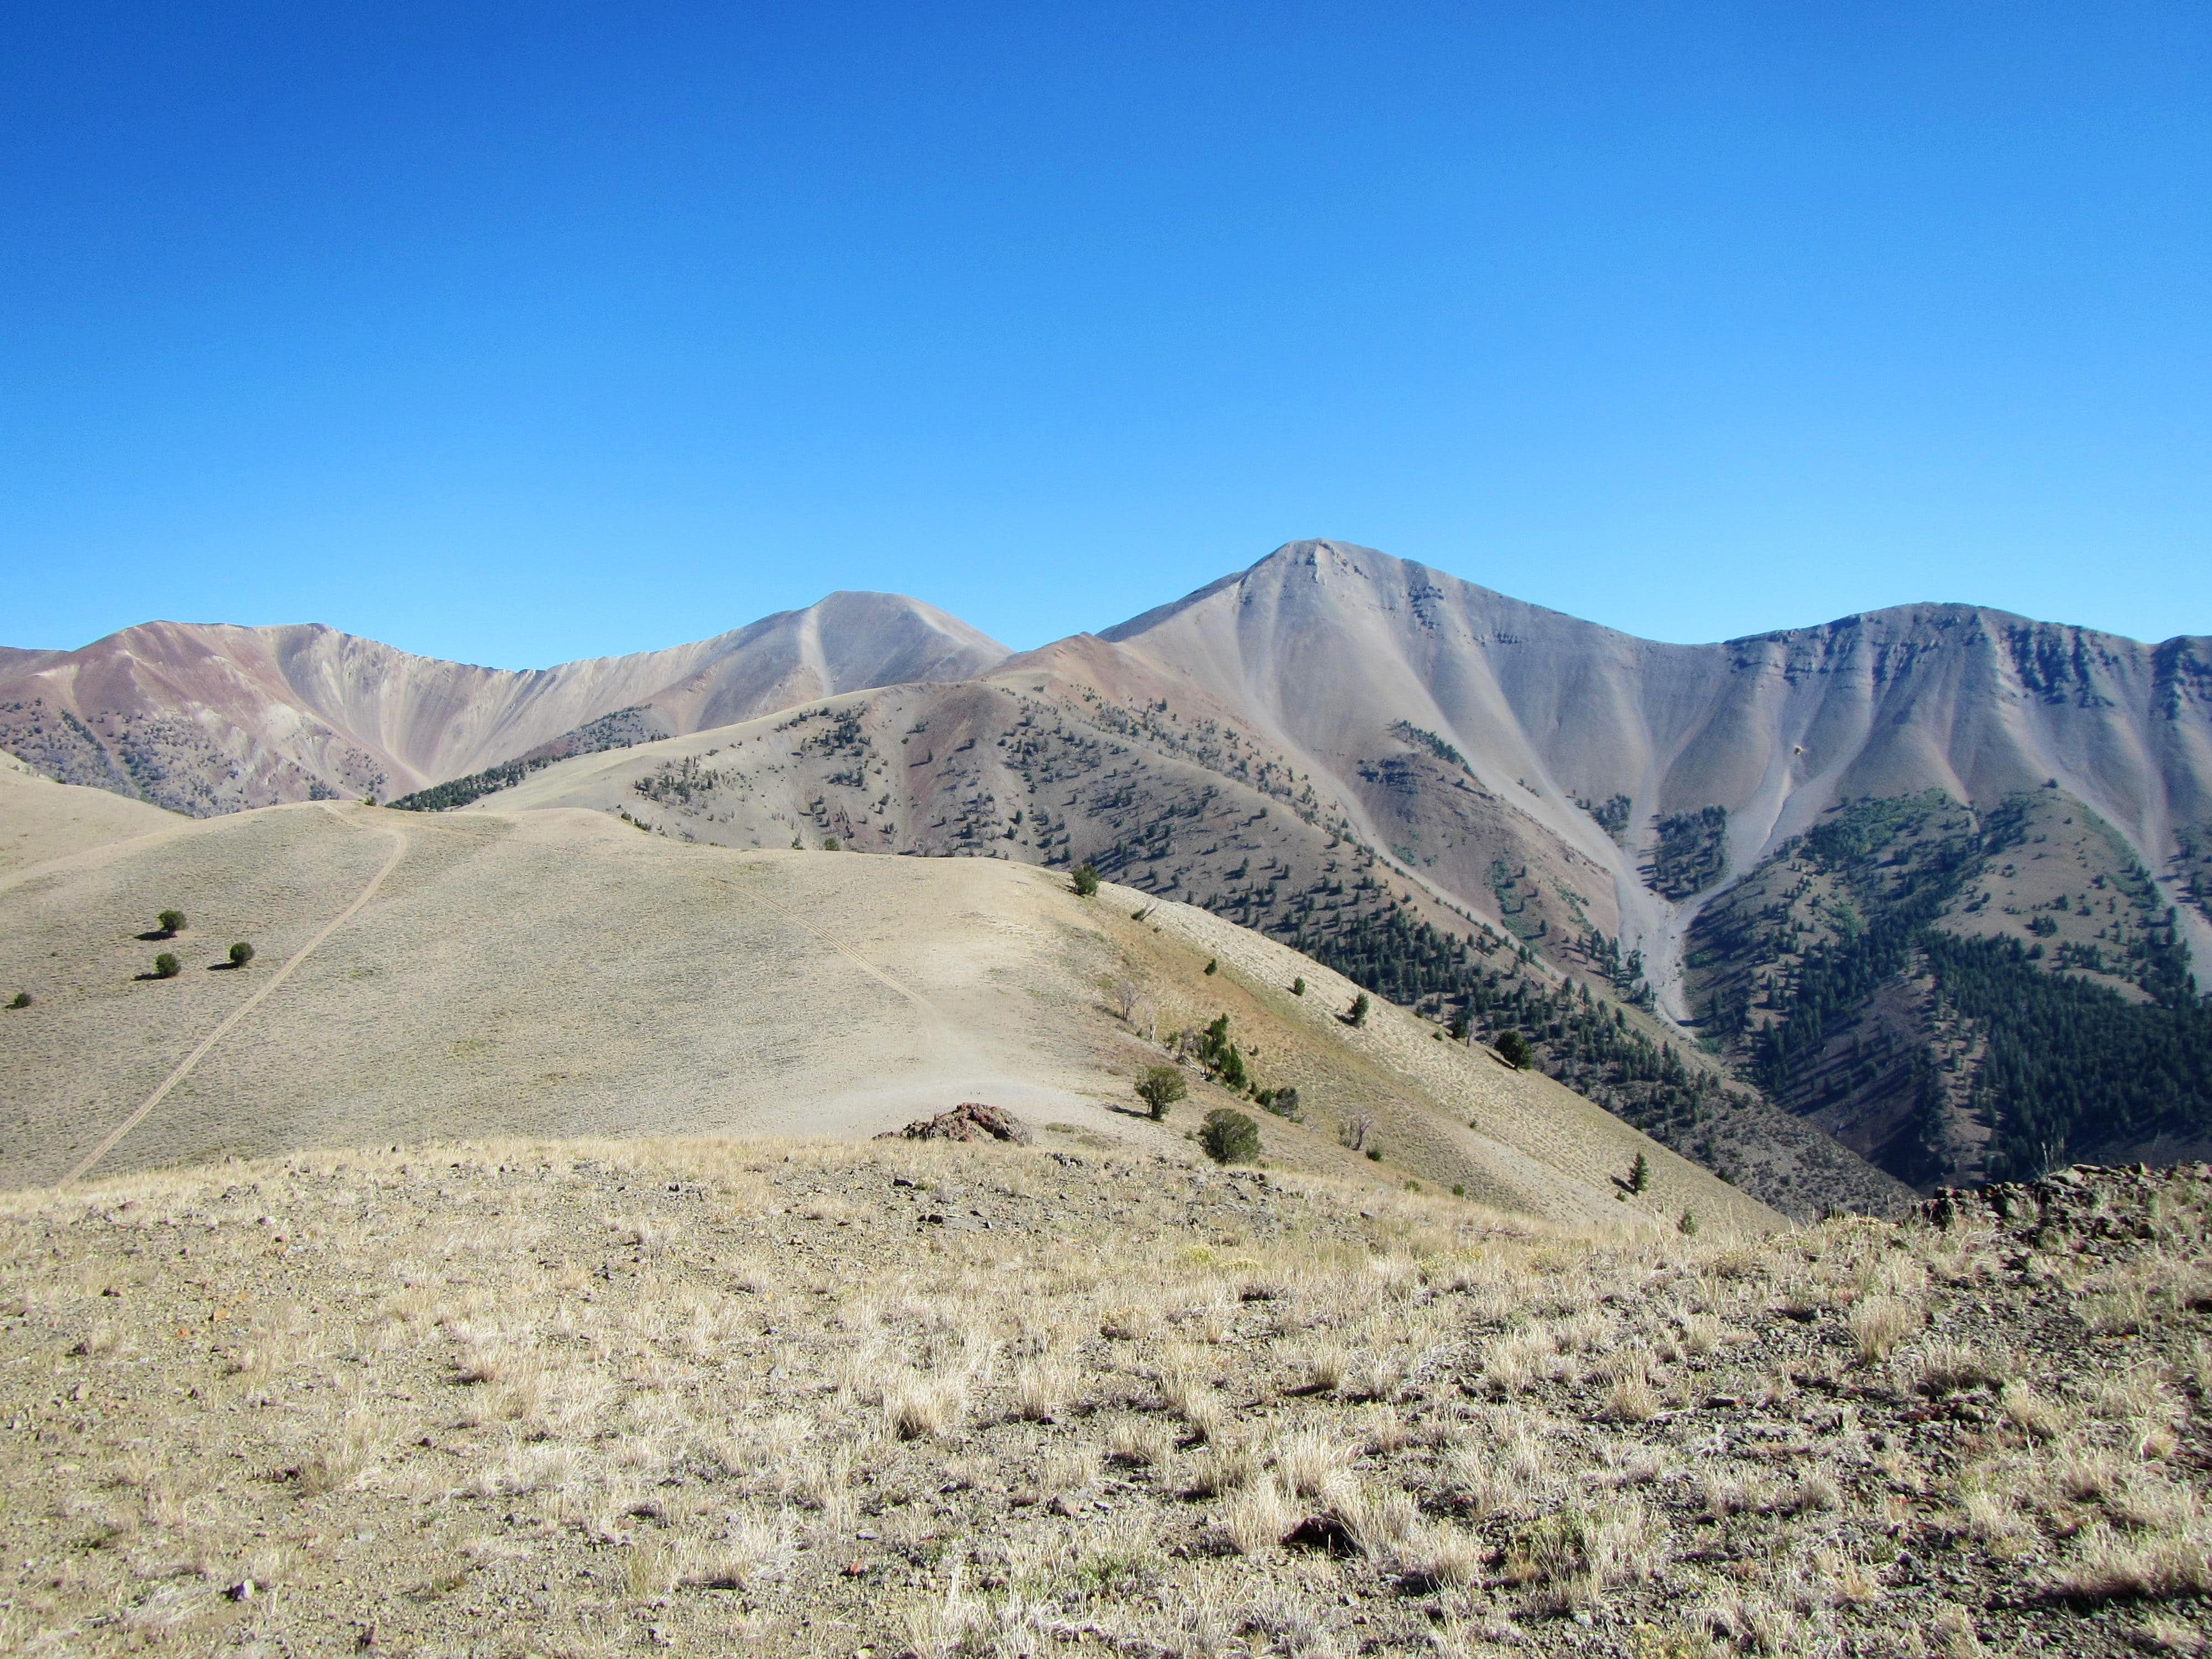 Shelly Mountain: Antelope Pass route